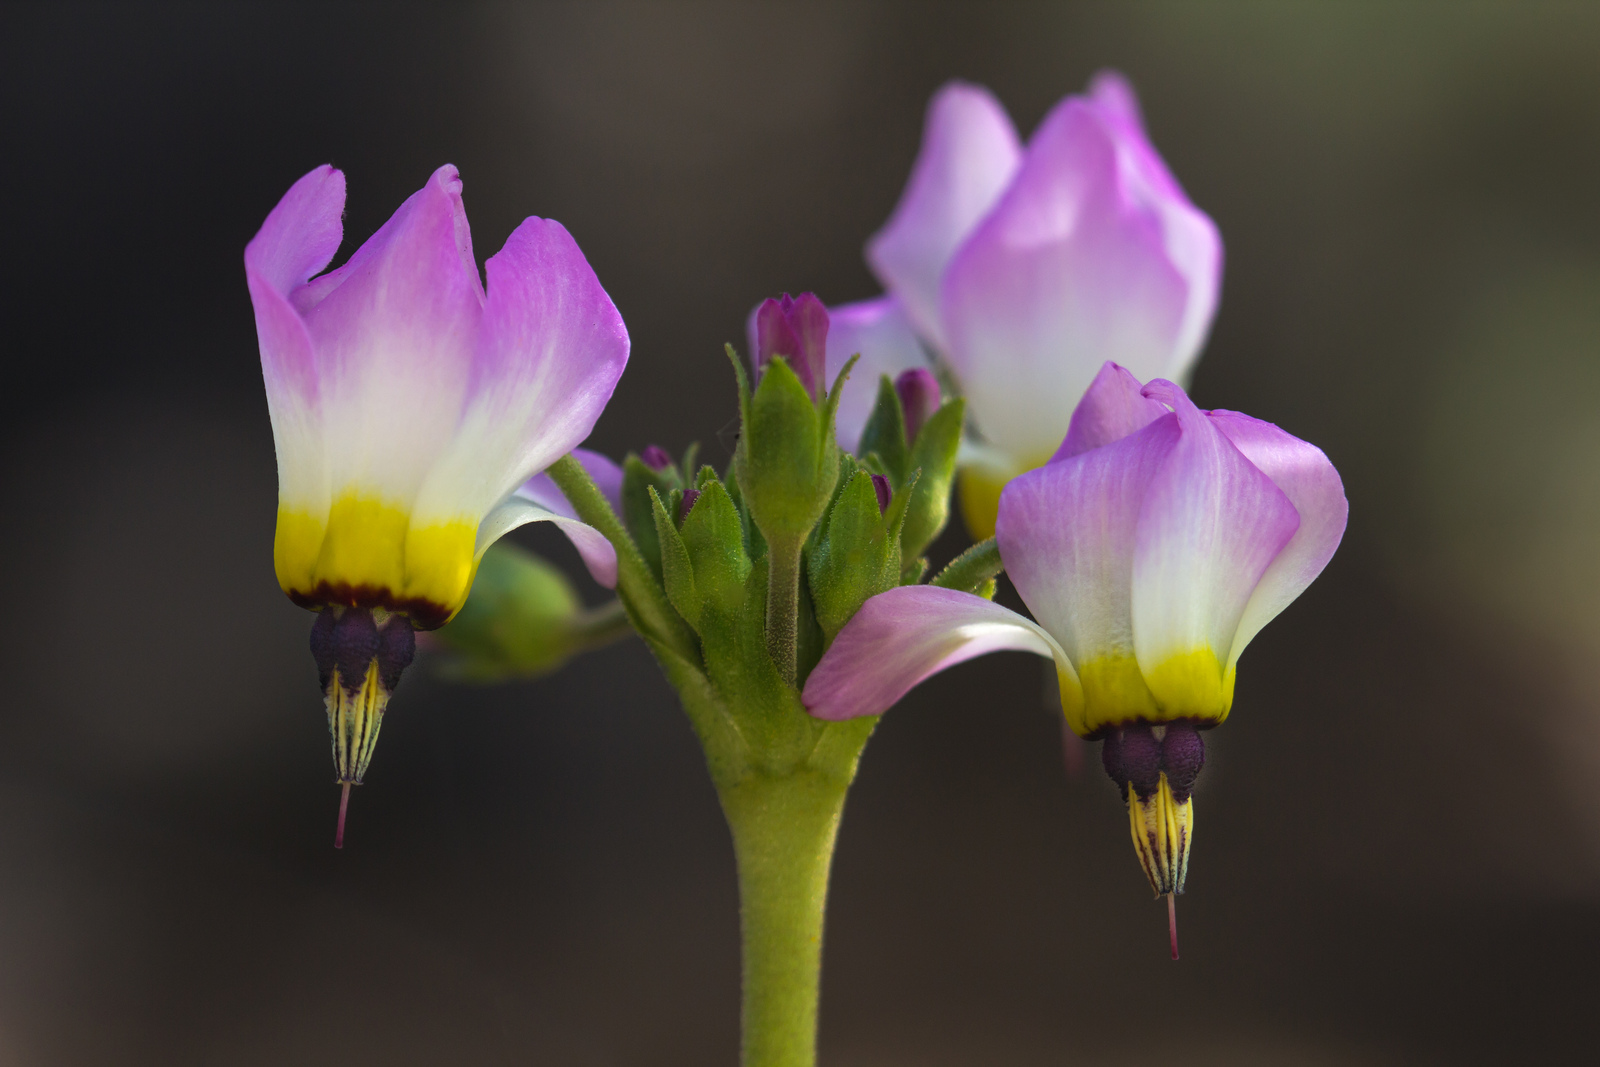 Close-up of the flowers of <i>Primula tetrandra</i>